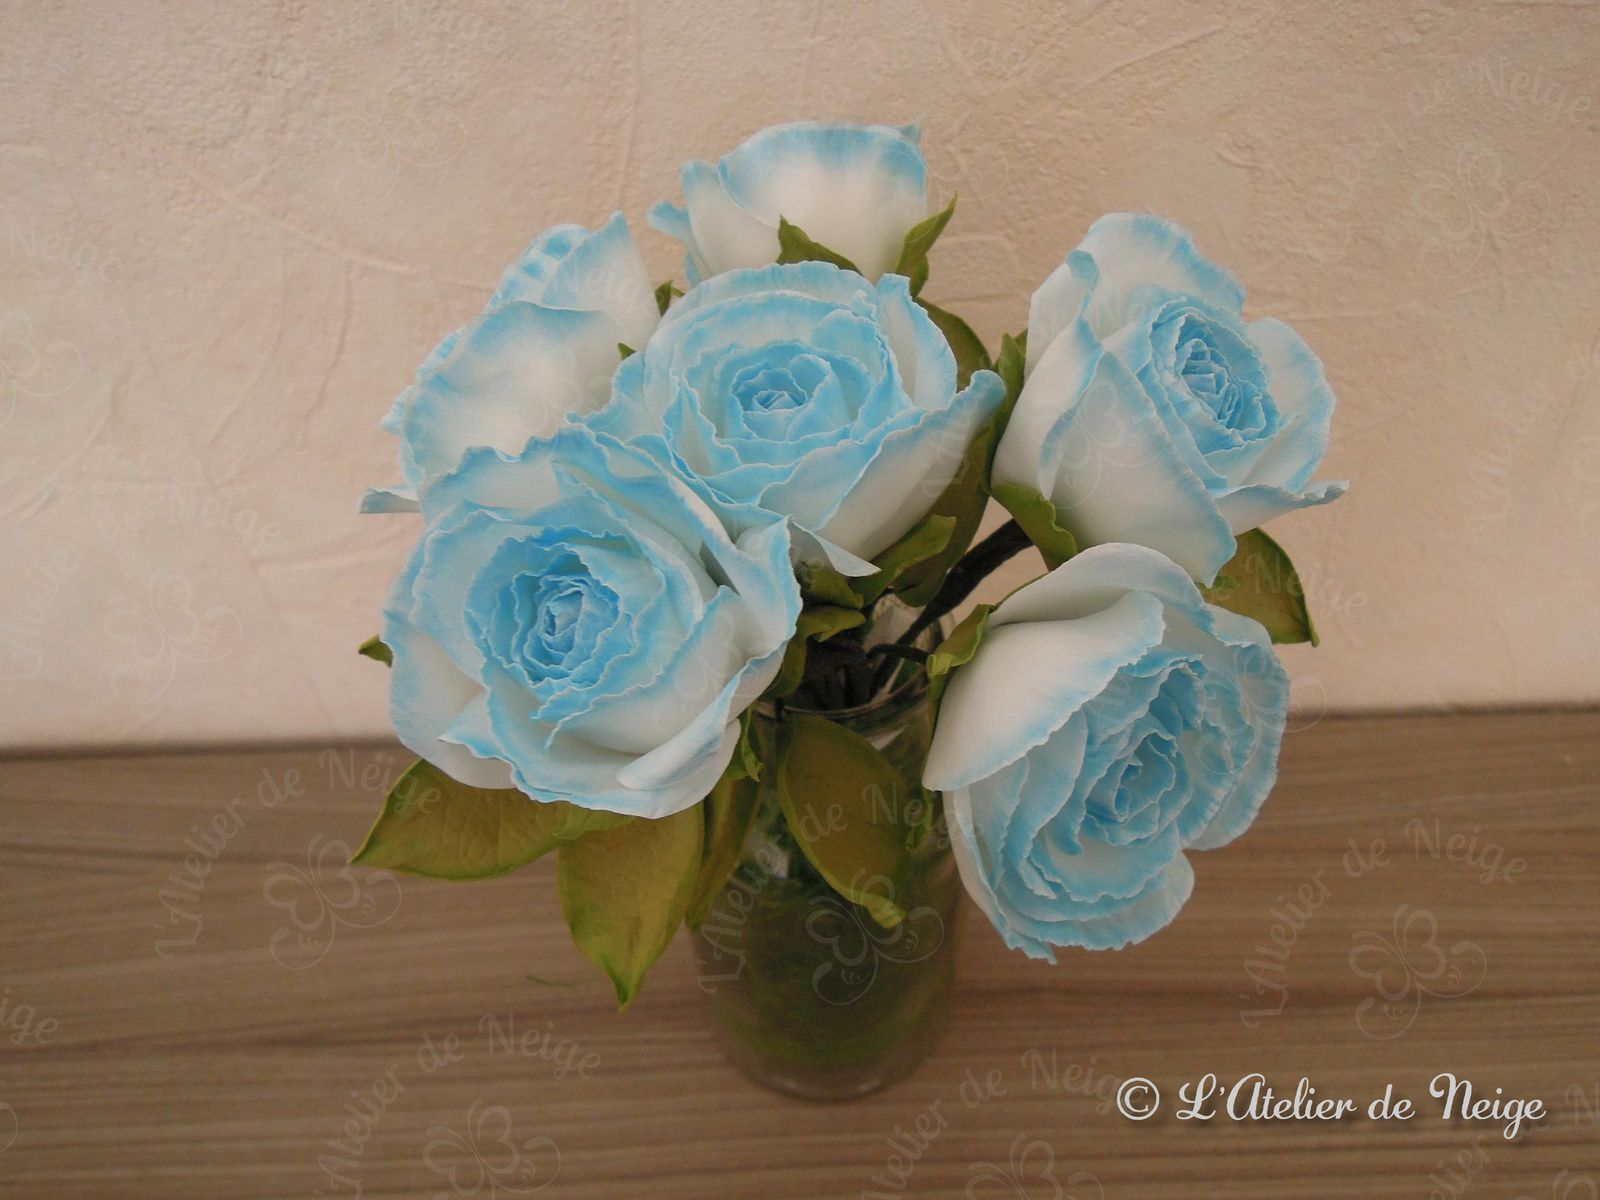 054 - Bouquet de Roses Bleues et Blanches Communion Alice 11 avril 2021